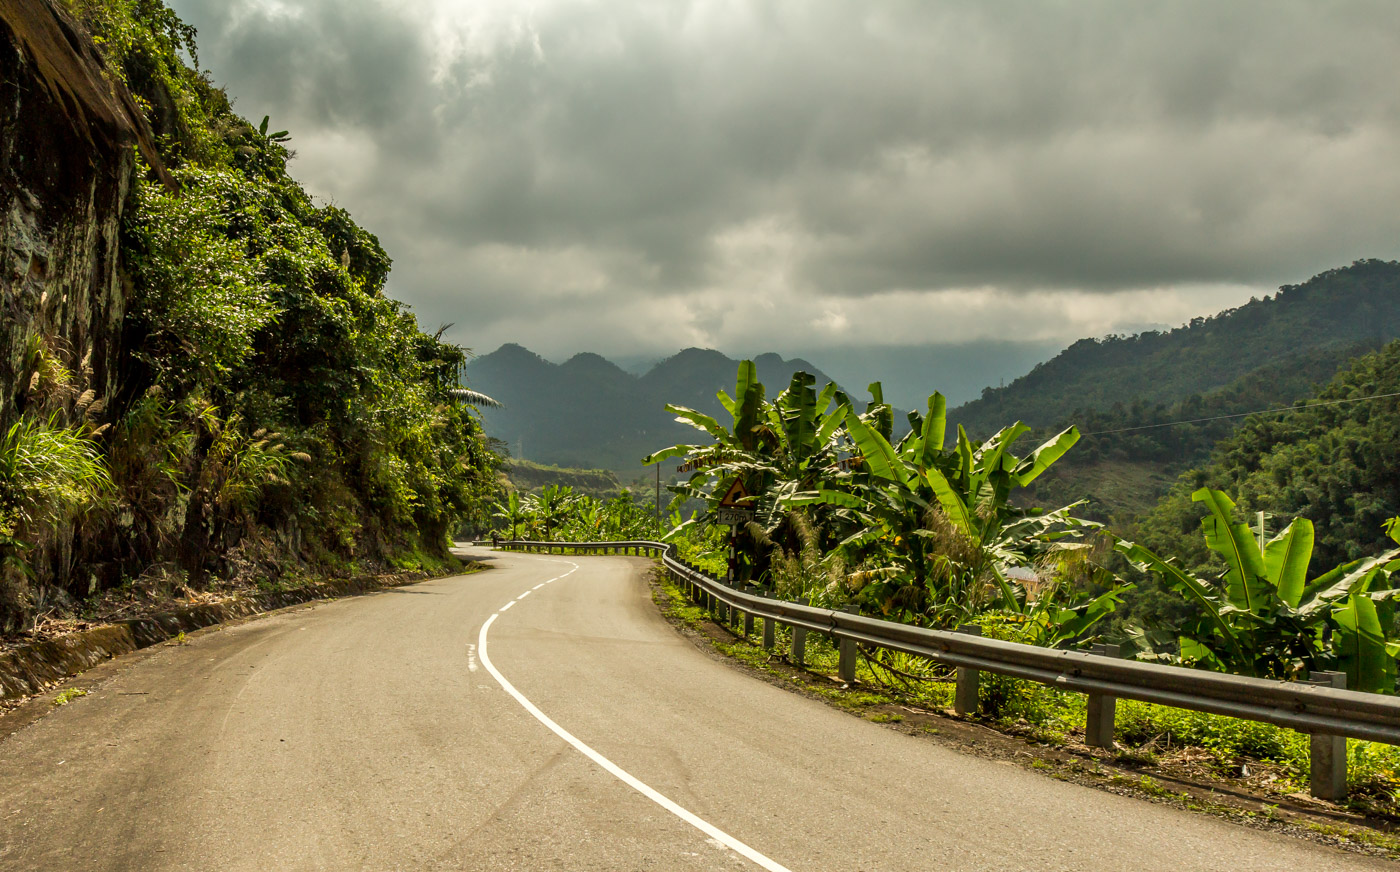 The road twisted and turned through the mountains.